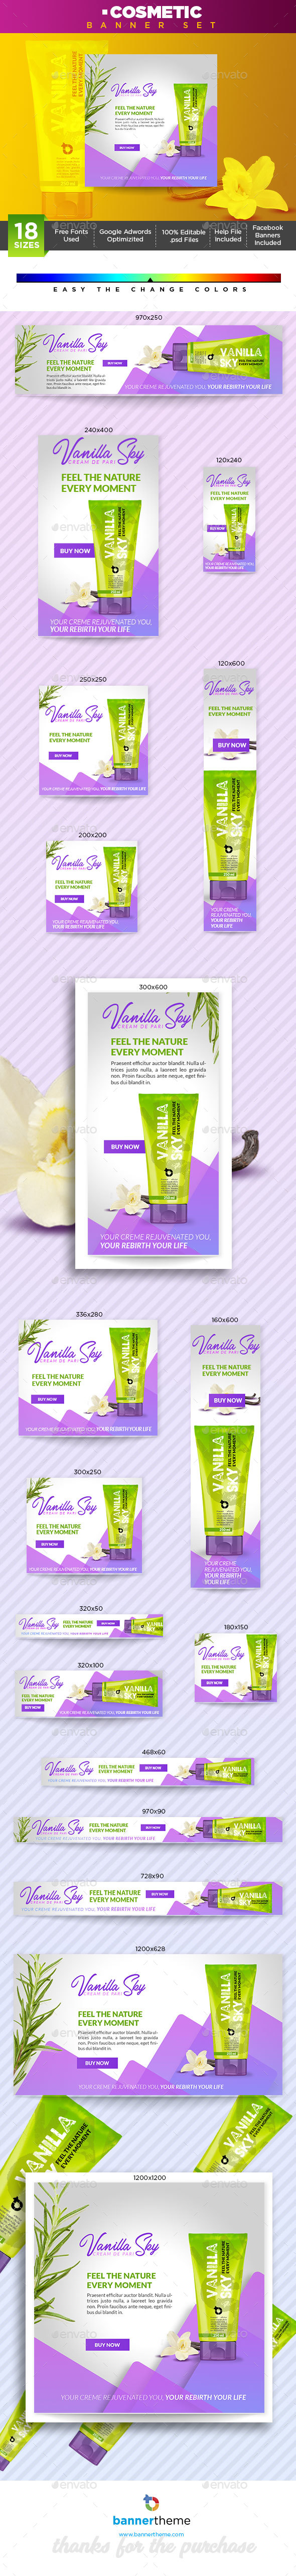 Cosmetic Banner - Banners & Ads Web Elements